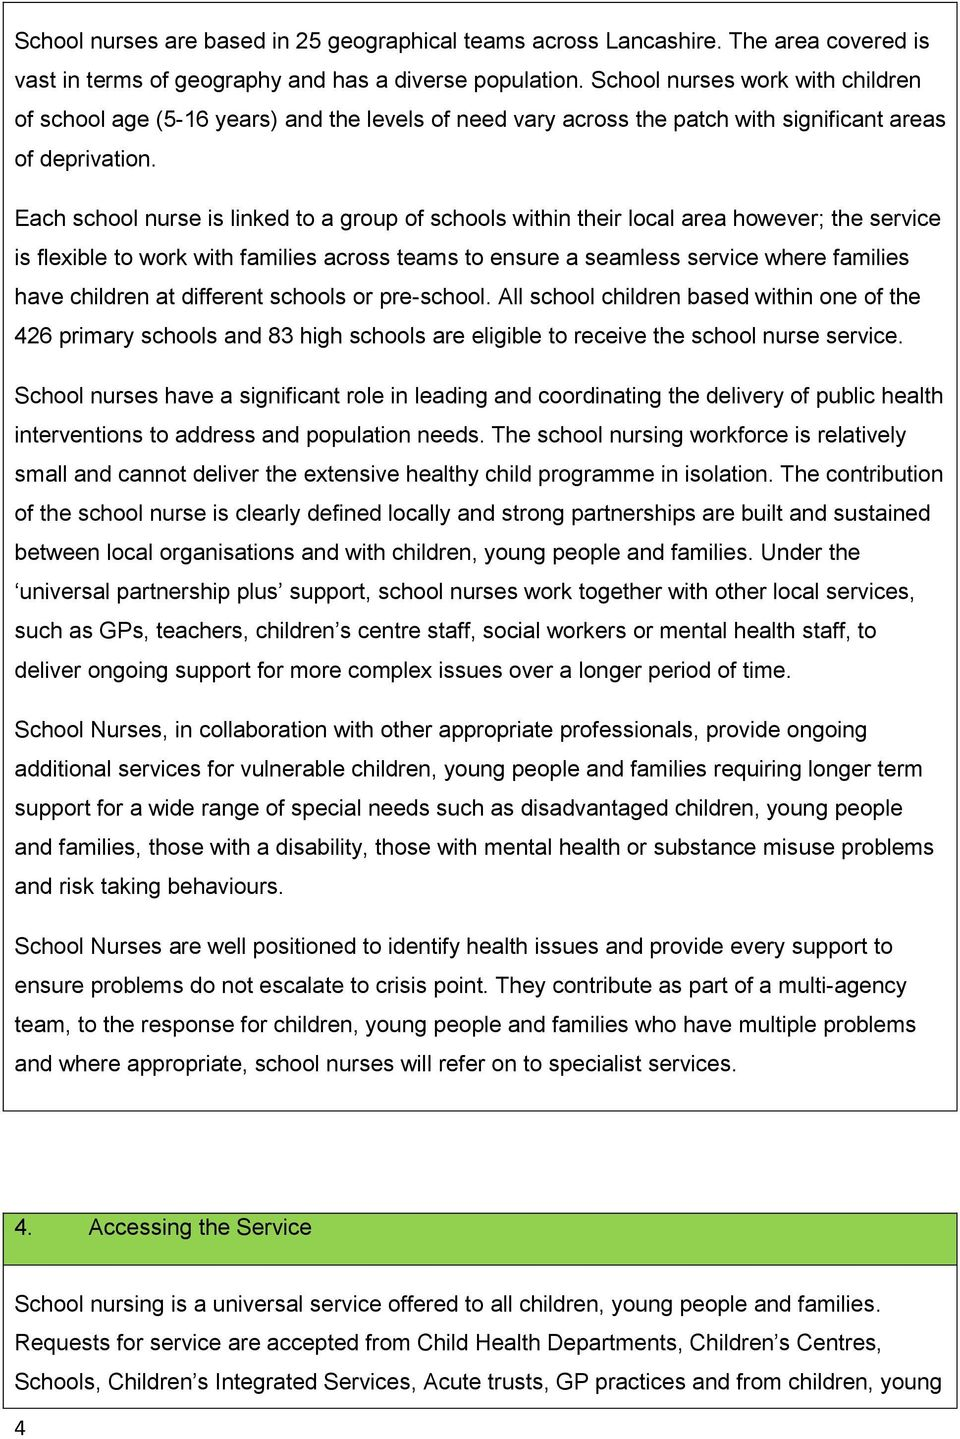 Each school nurse is linked to a group of schools within their local area however; the service is flexible to work with families across teams to ensure a seamless service where families have children